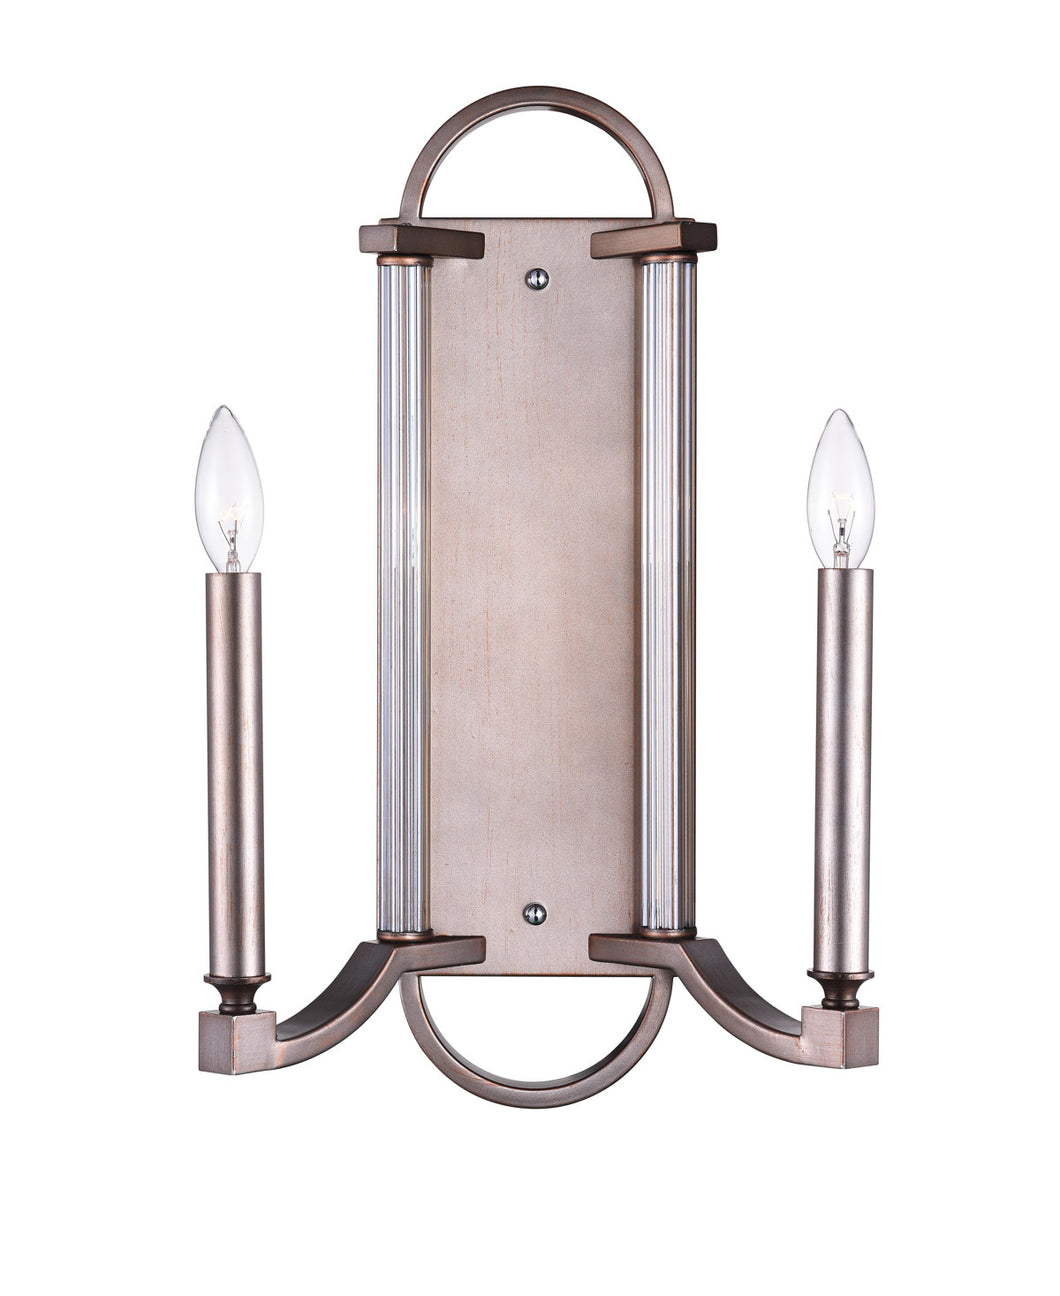 2 Light Wall Sconce with Brownish Silver finish